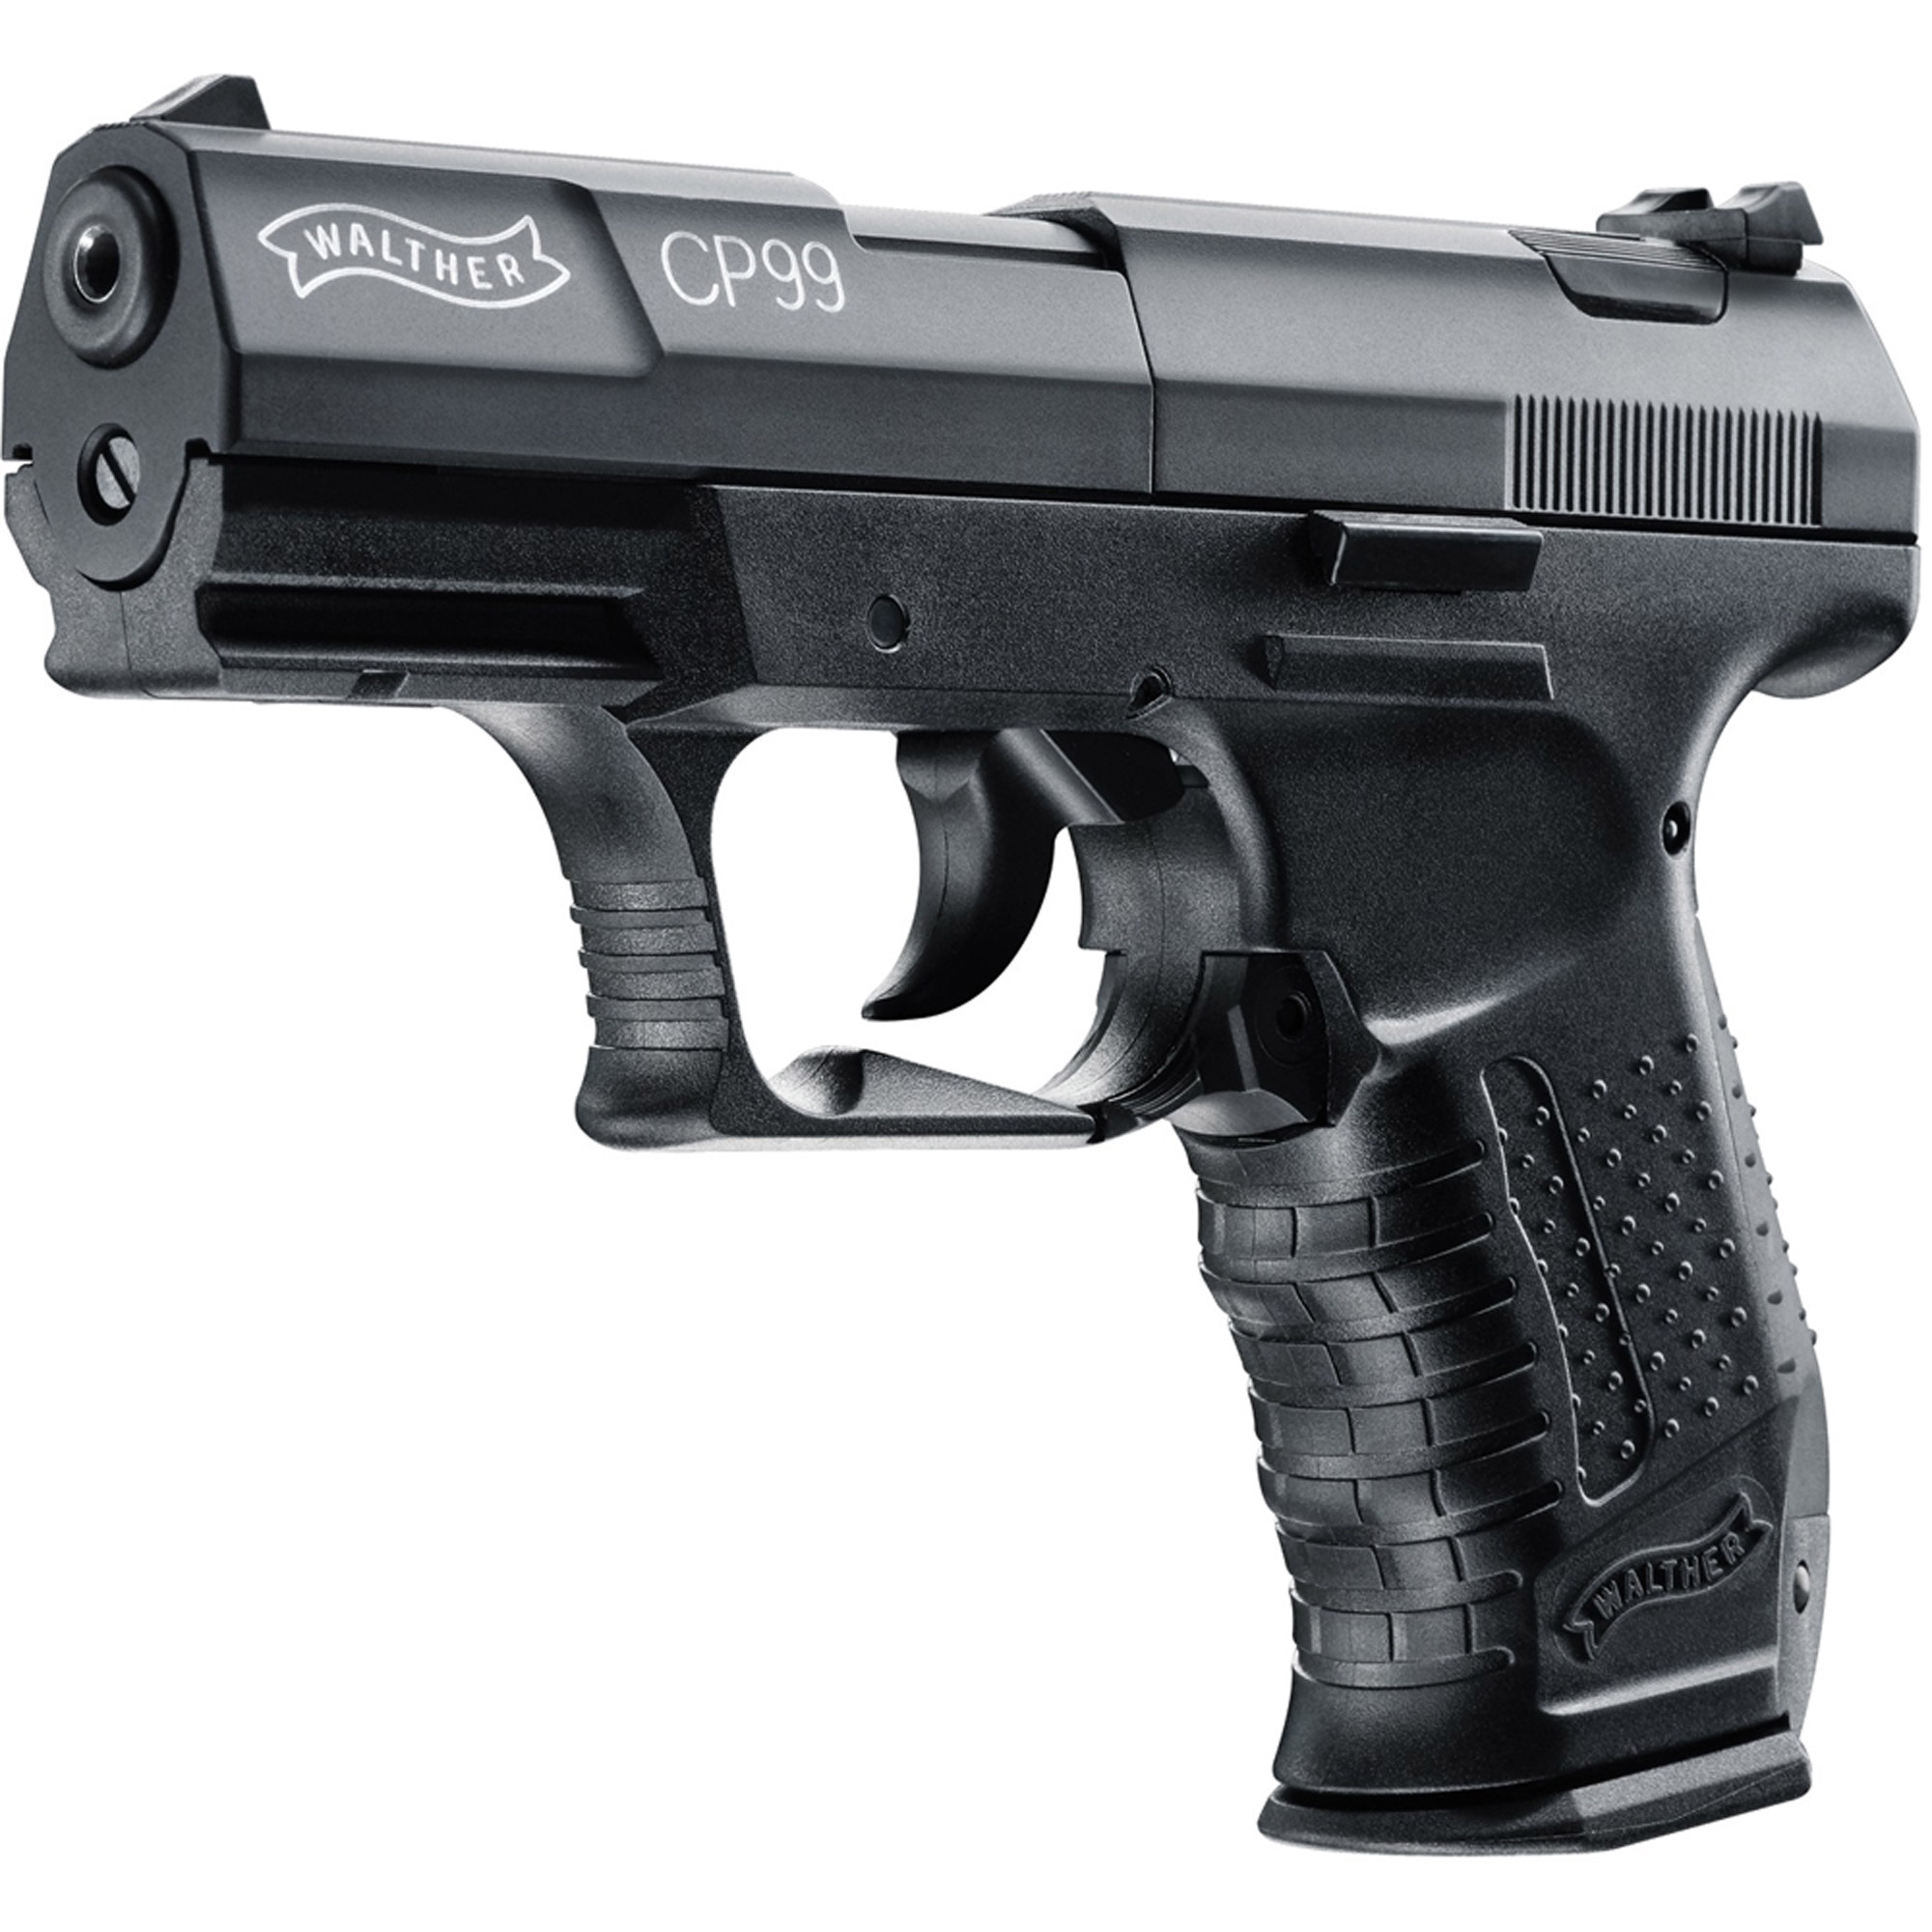 Walther CP99 Air Gun, 8 Shot Rotary, Black